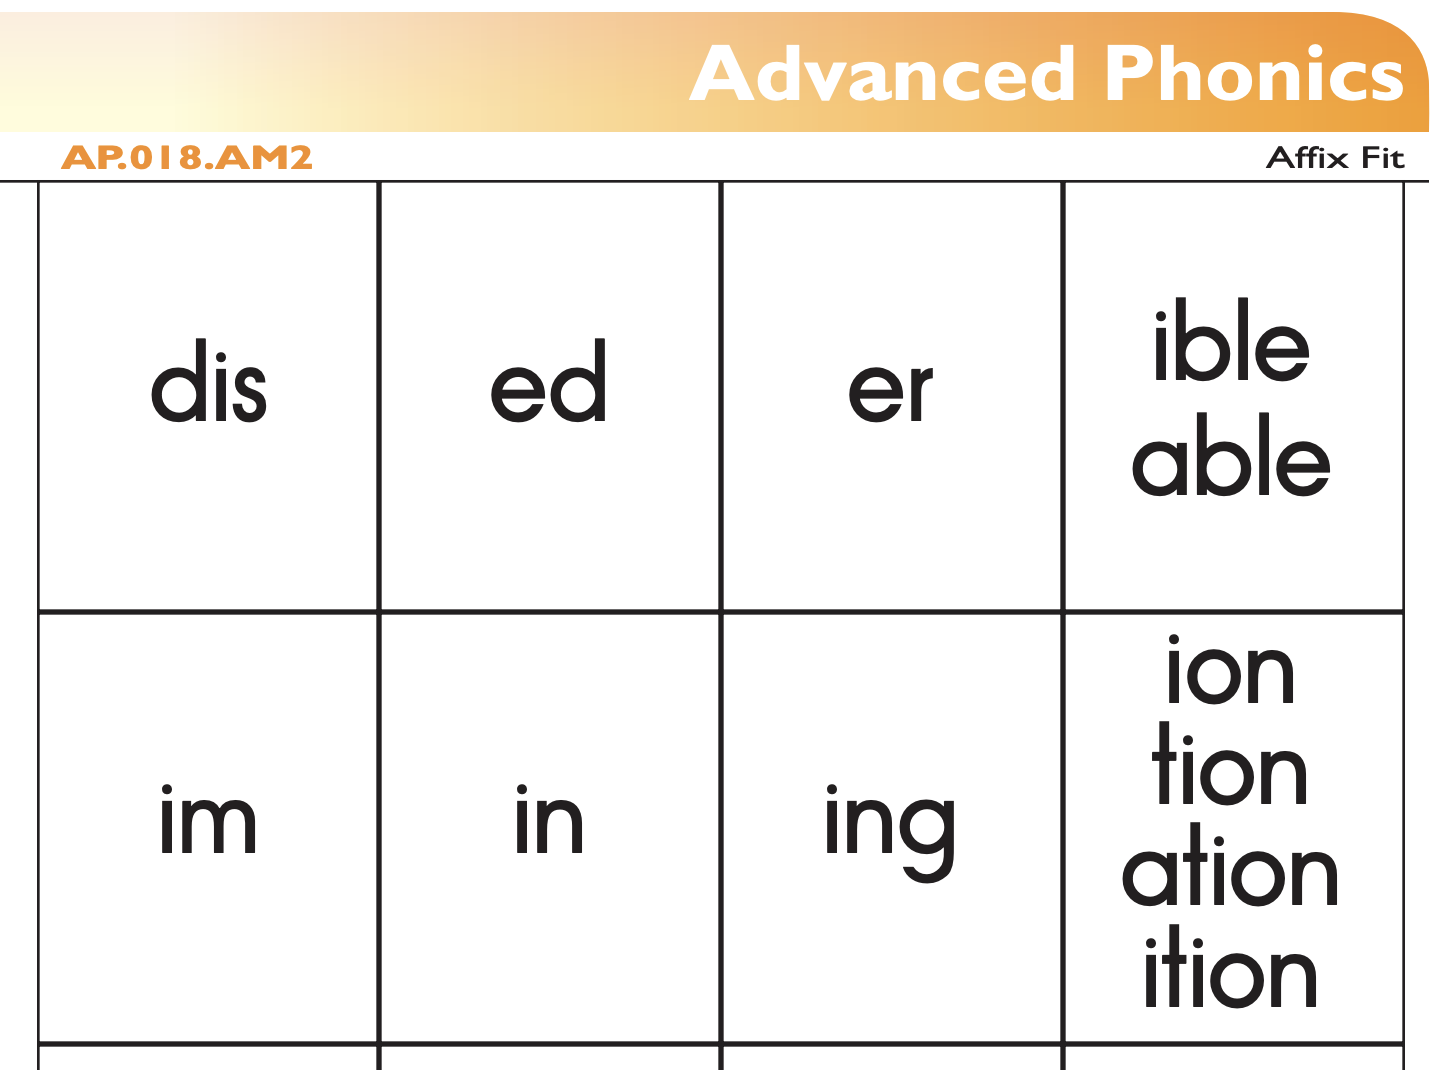 Advanced Phonics From The Florida Center For Reading